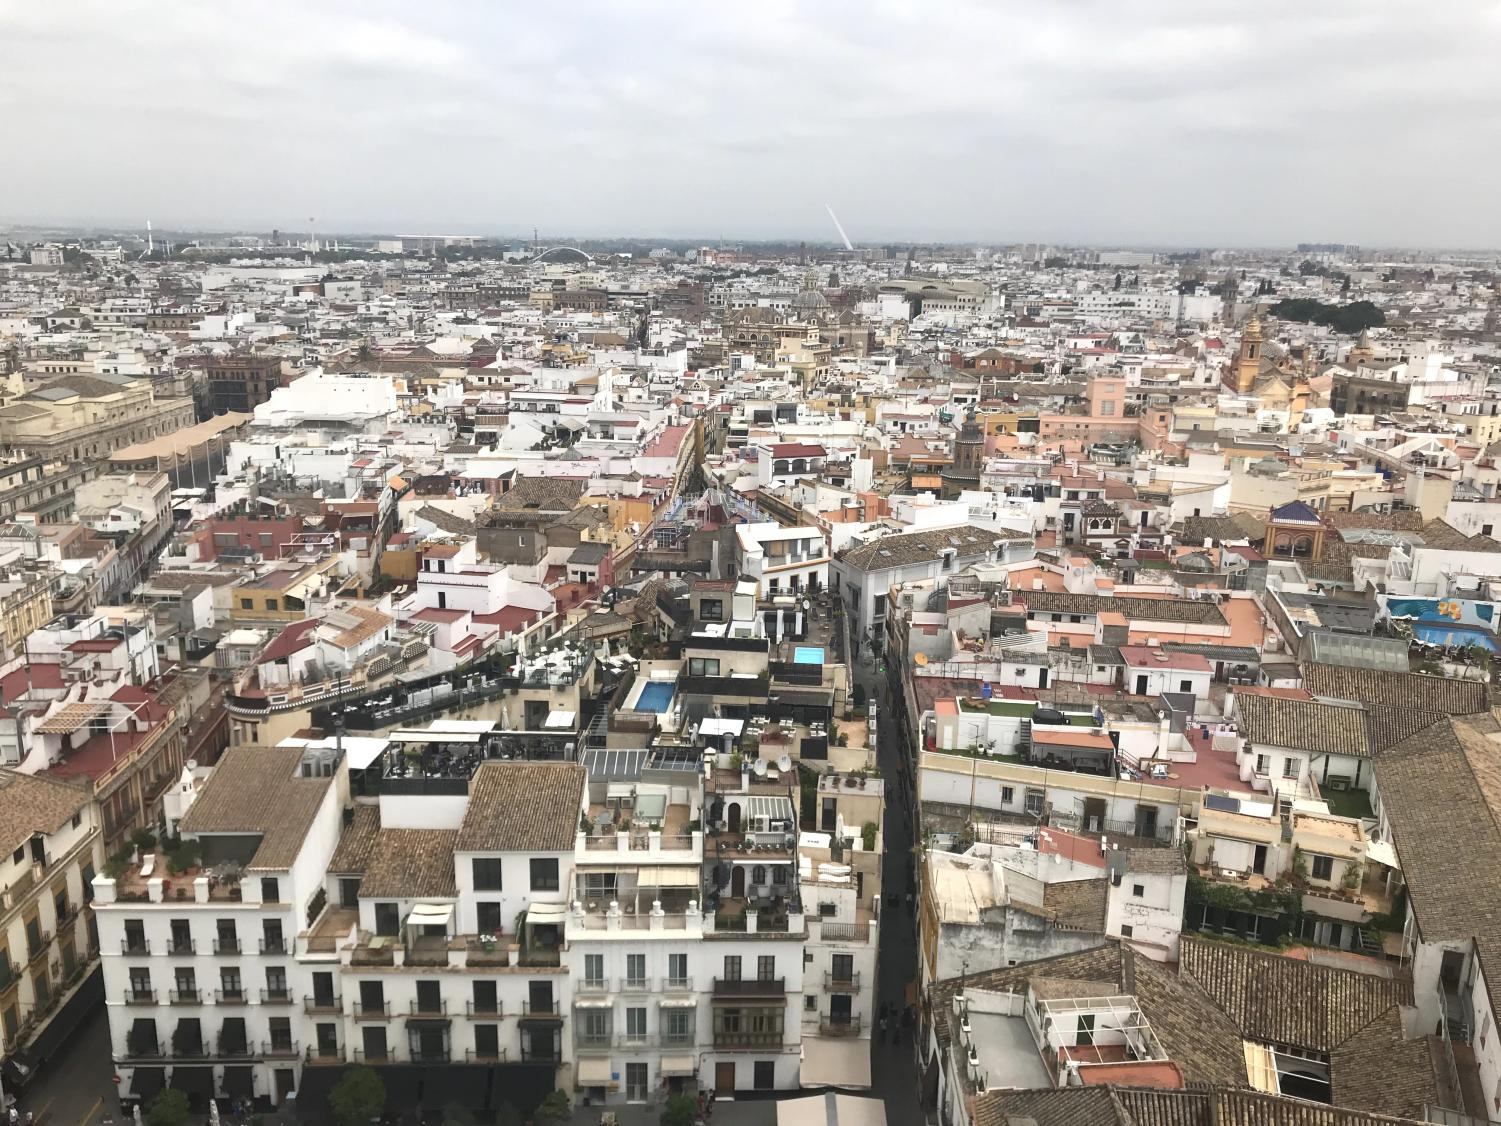 A top-down view of Madrid, Spain